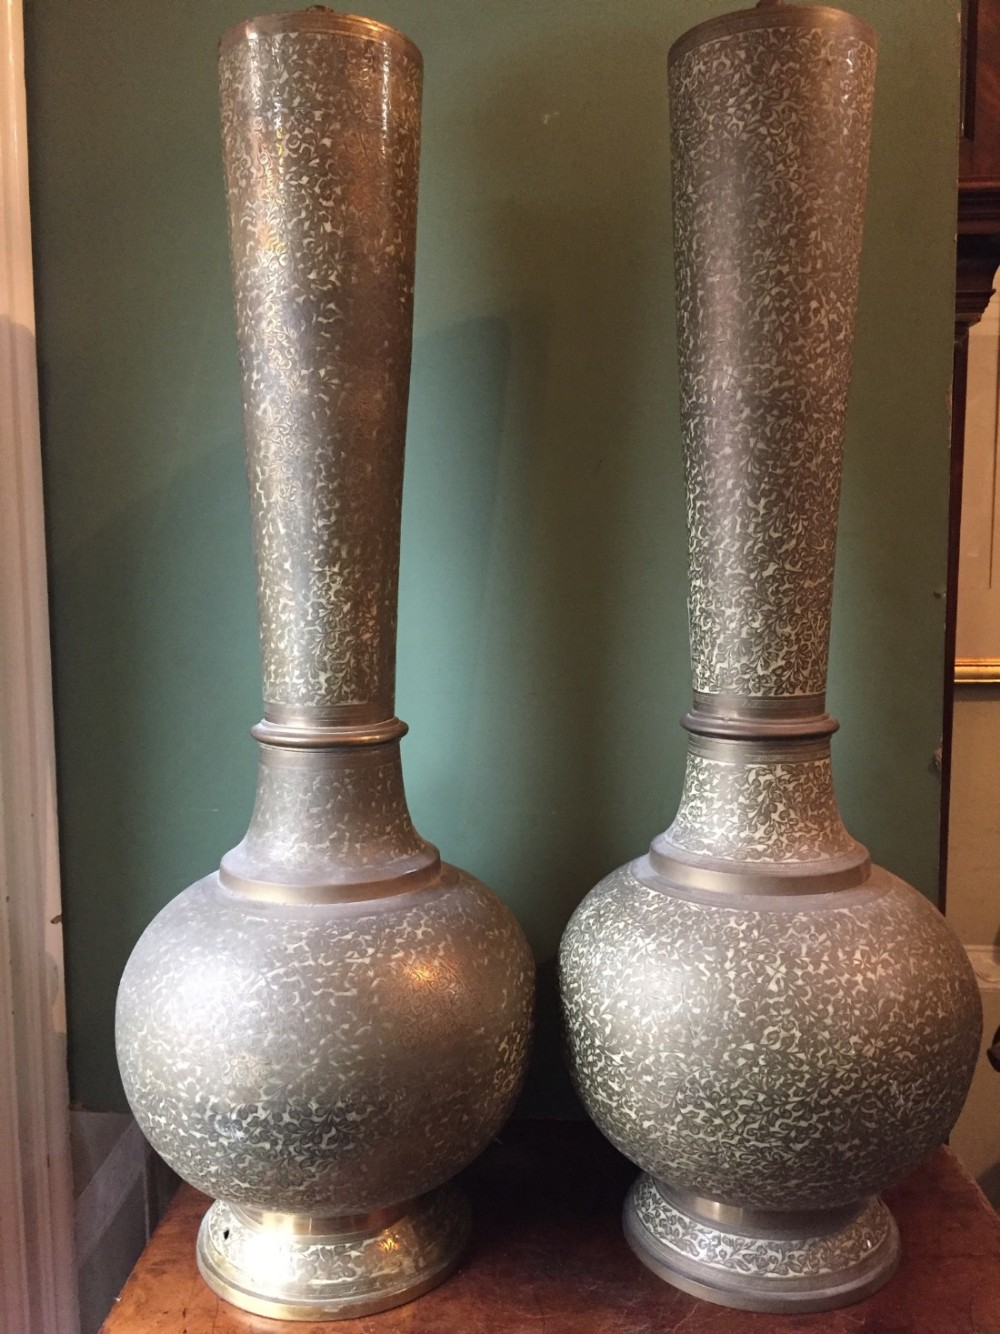 pair late c19th early c20th middle eastern probably egyptian brass lampbases with engraved leaf decoration on an enamelled body